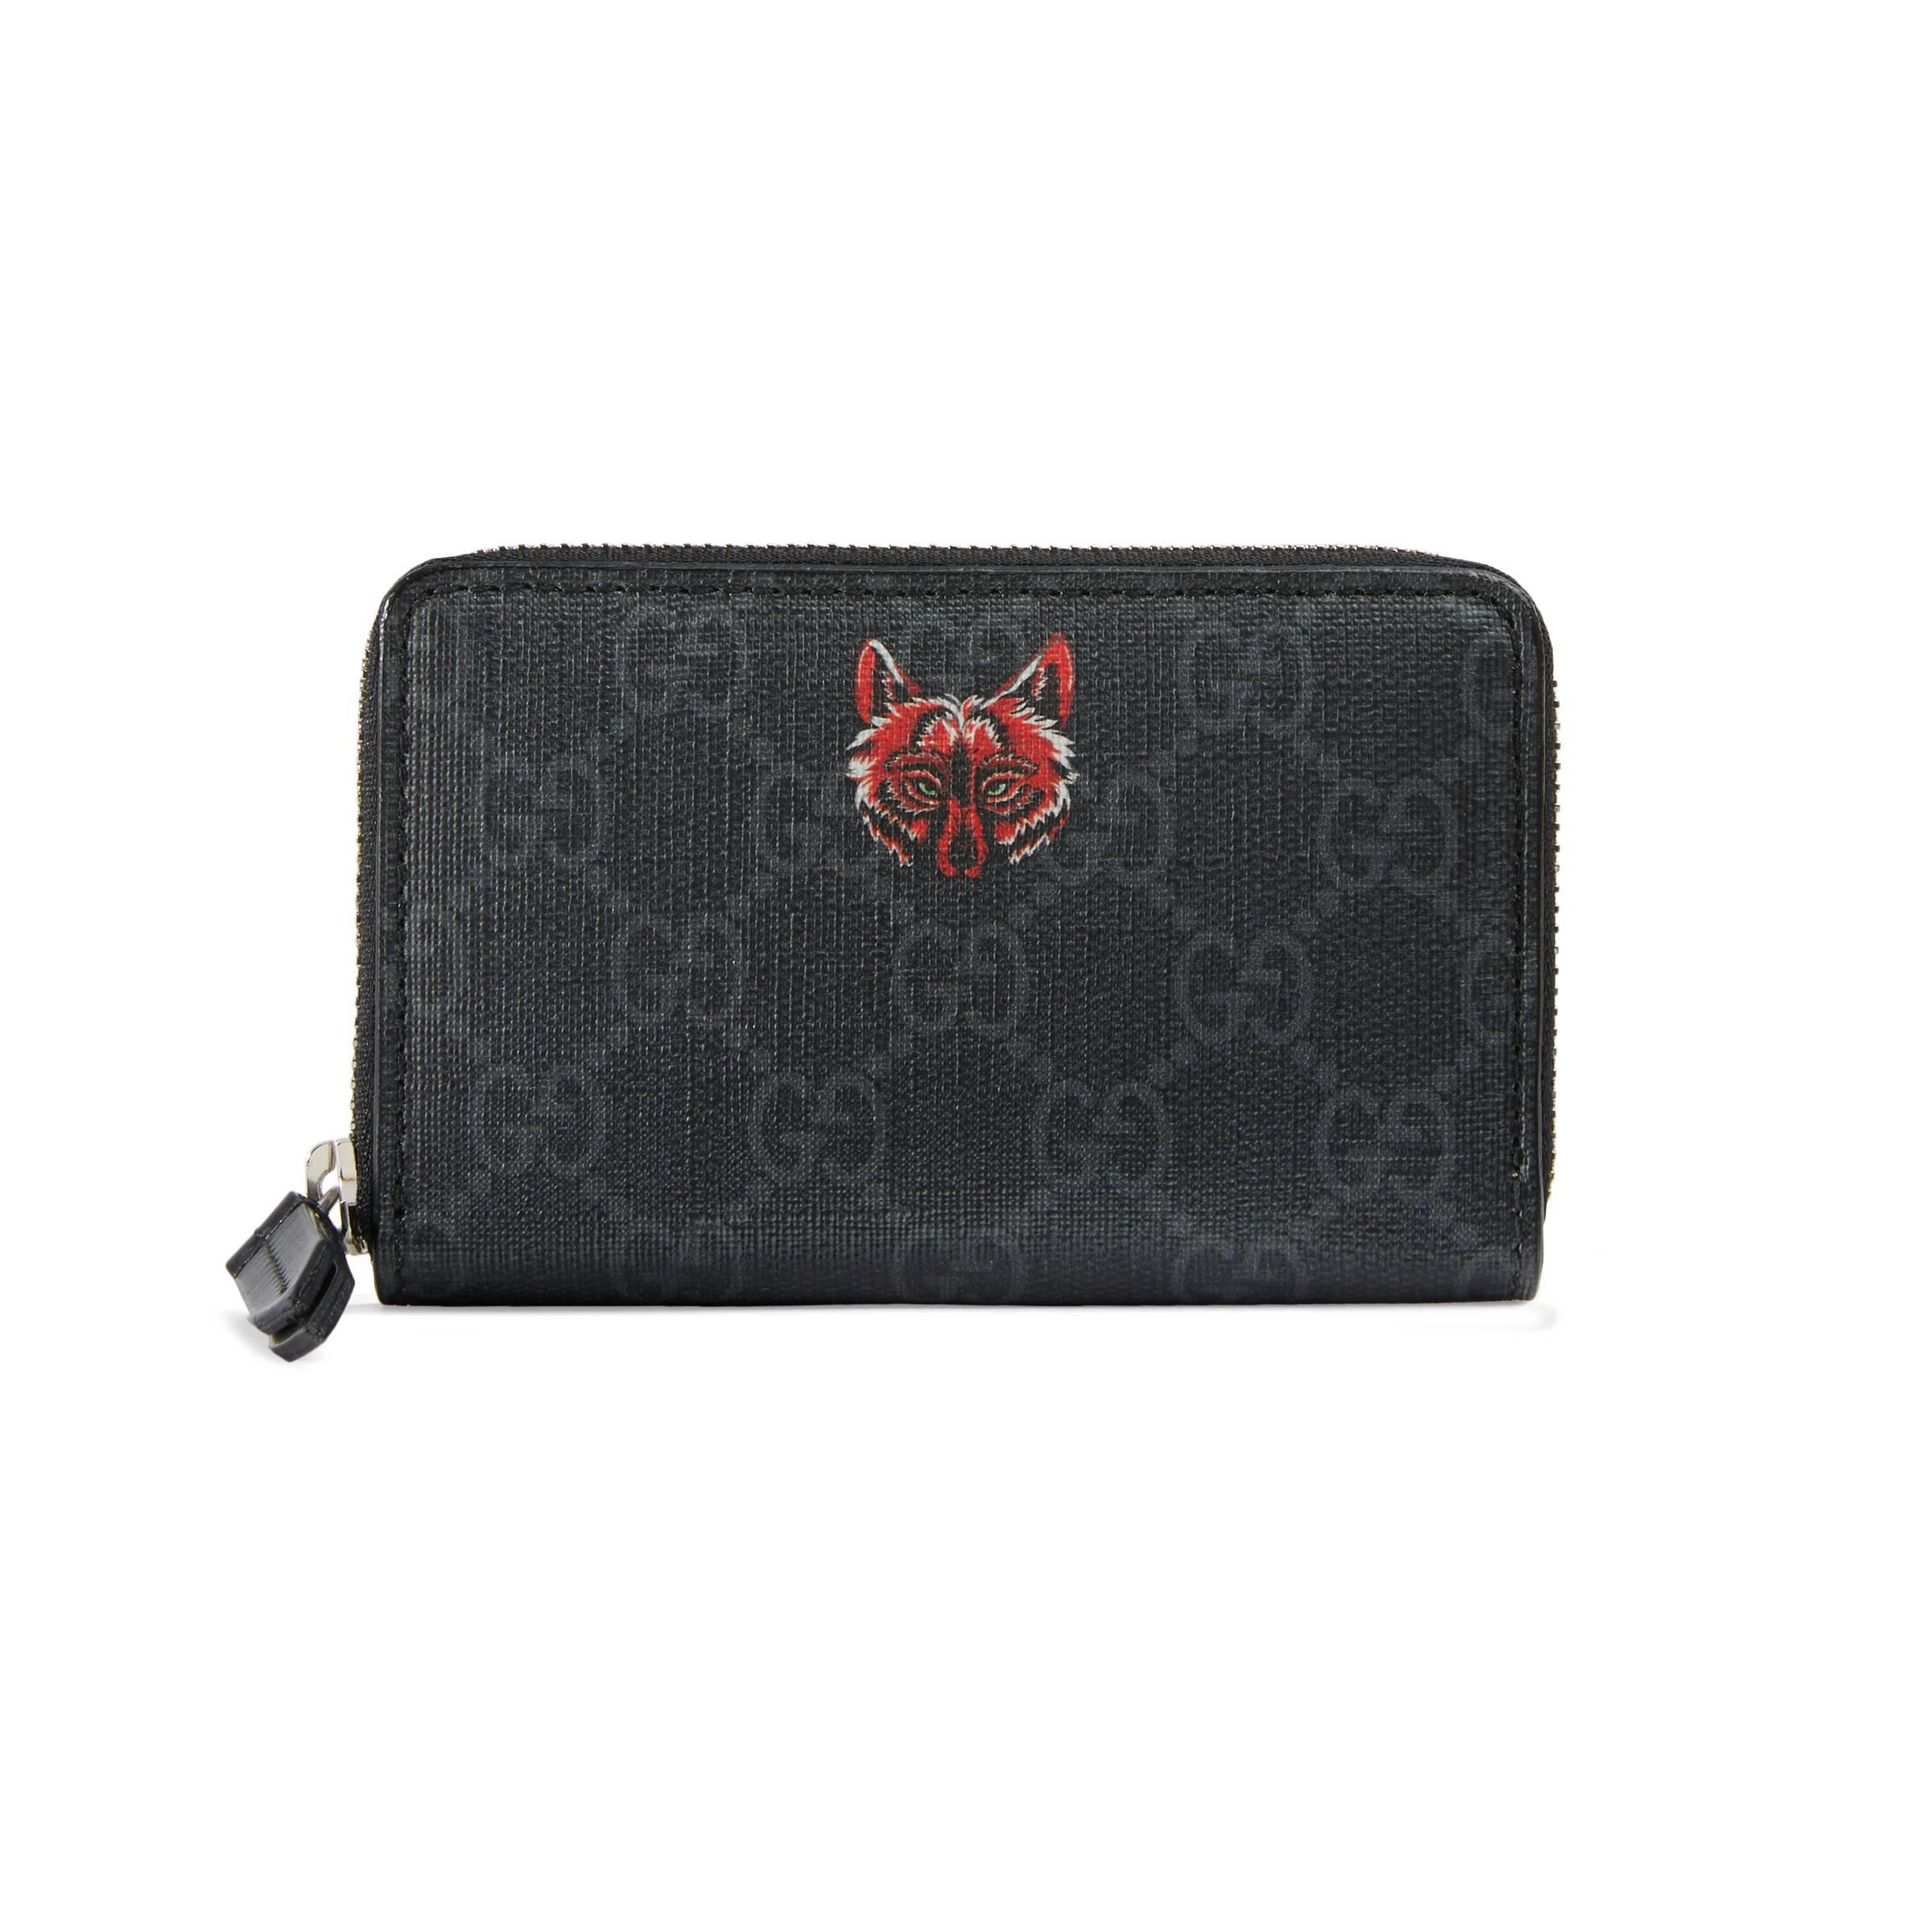 87f30192db0a06 Gucci Gg Supreme Card Case With Wolf in Black for Men - Lyst